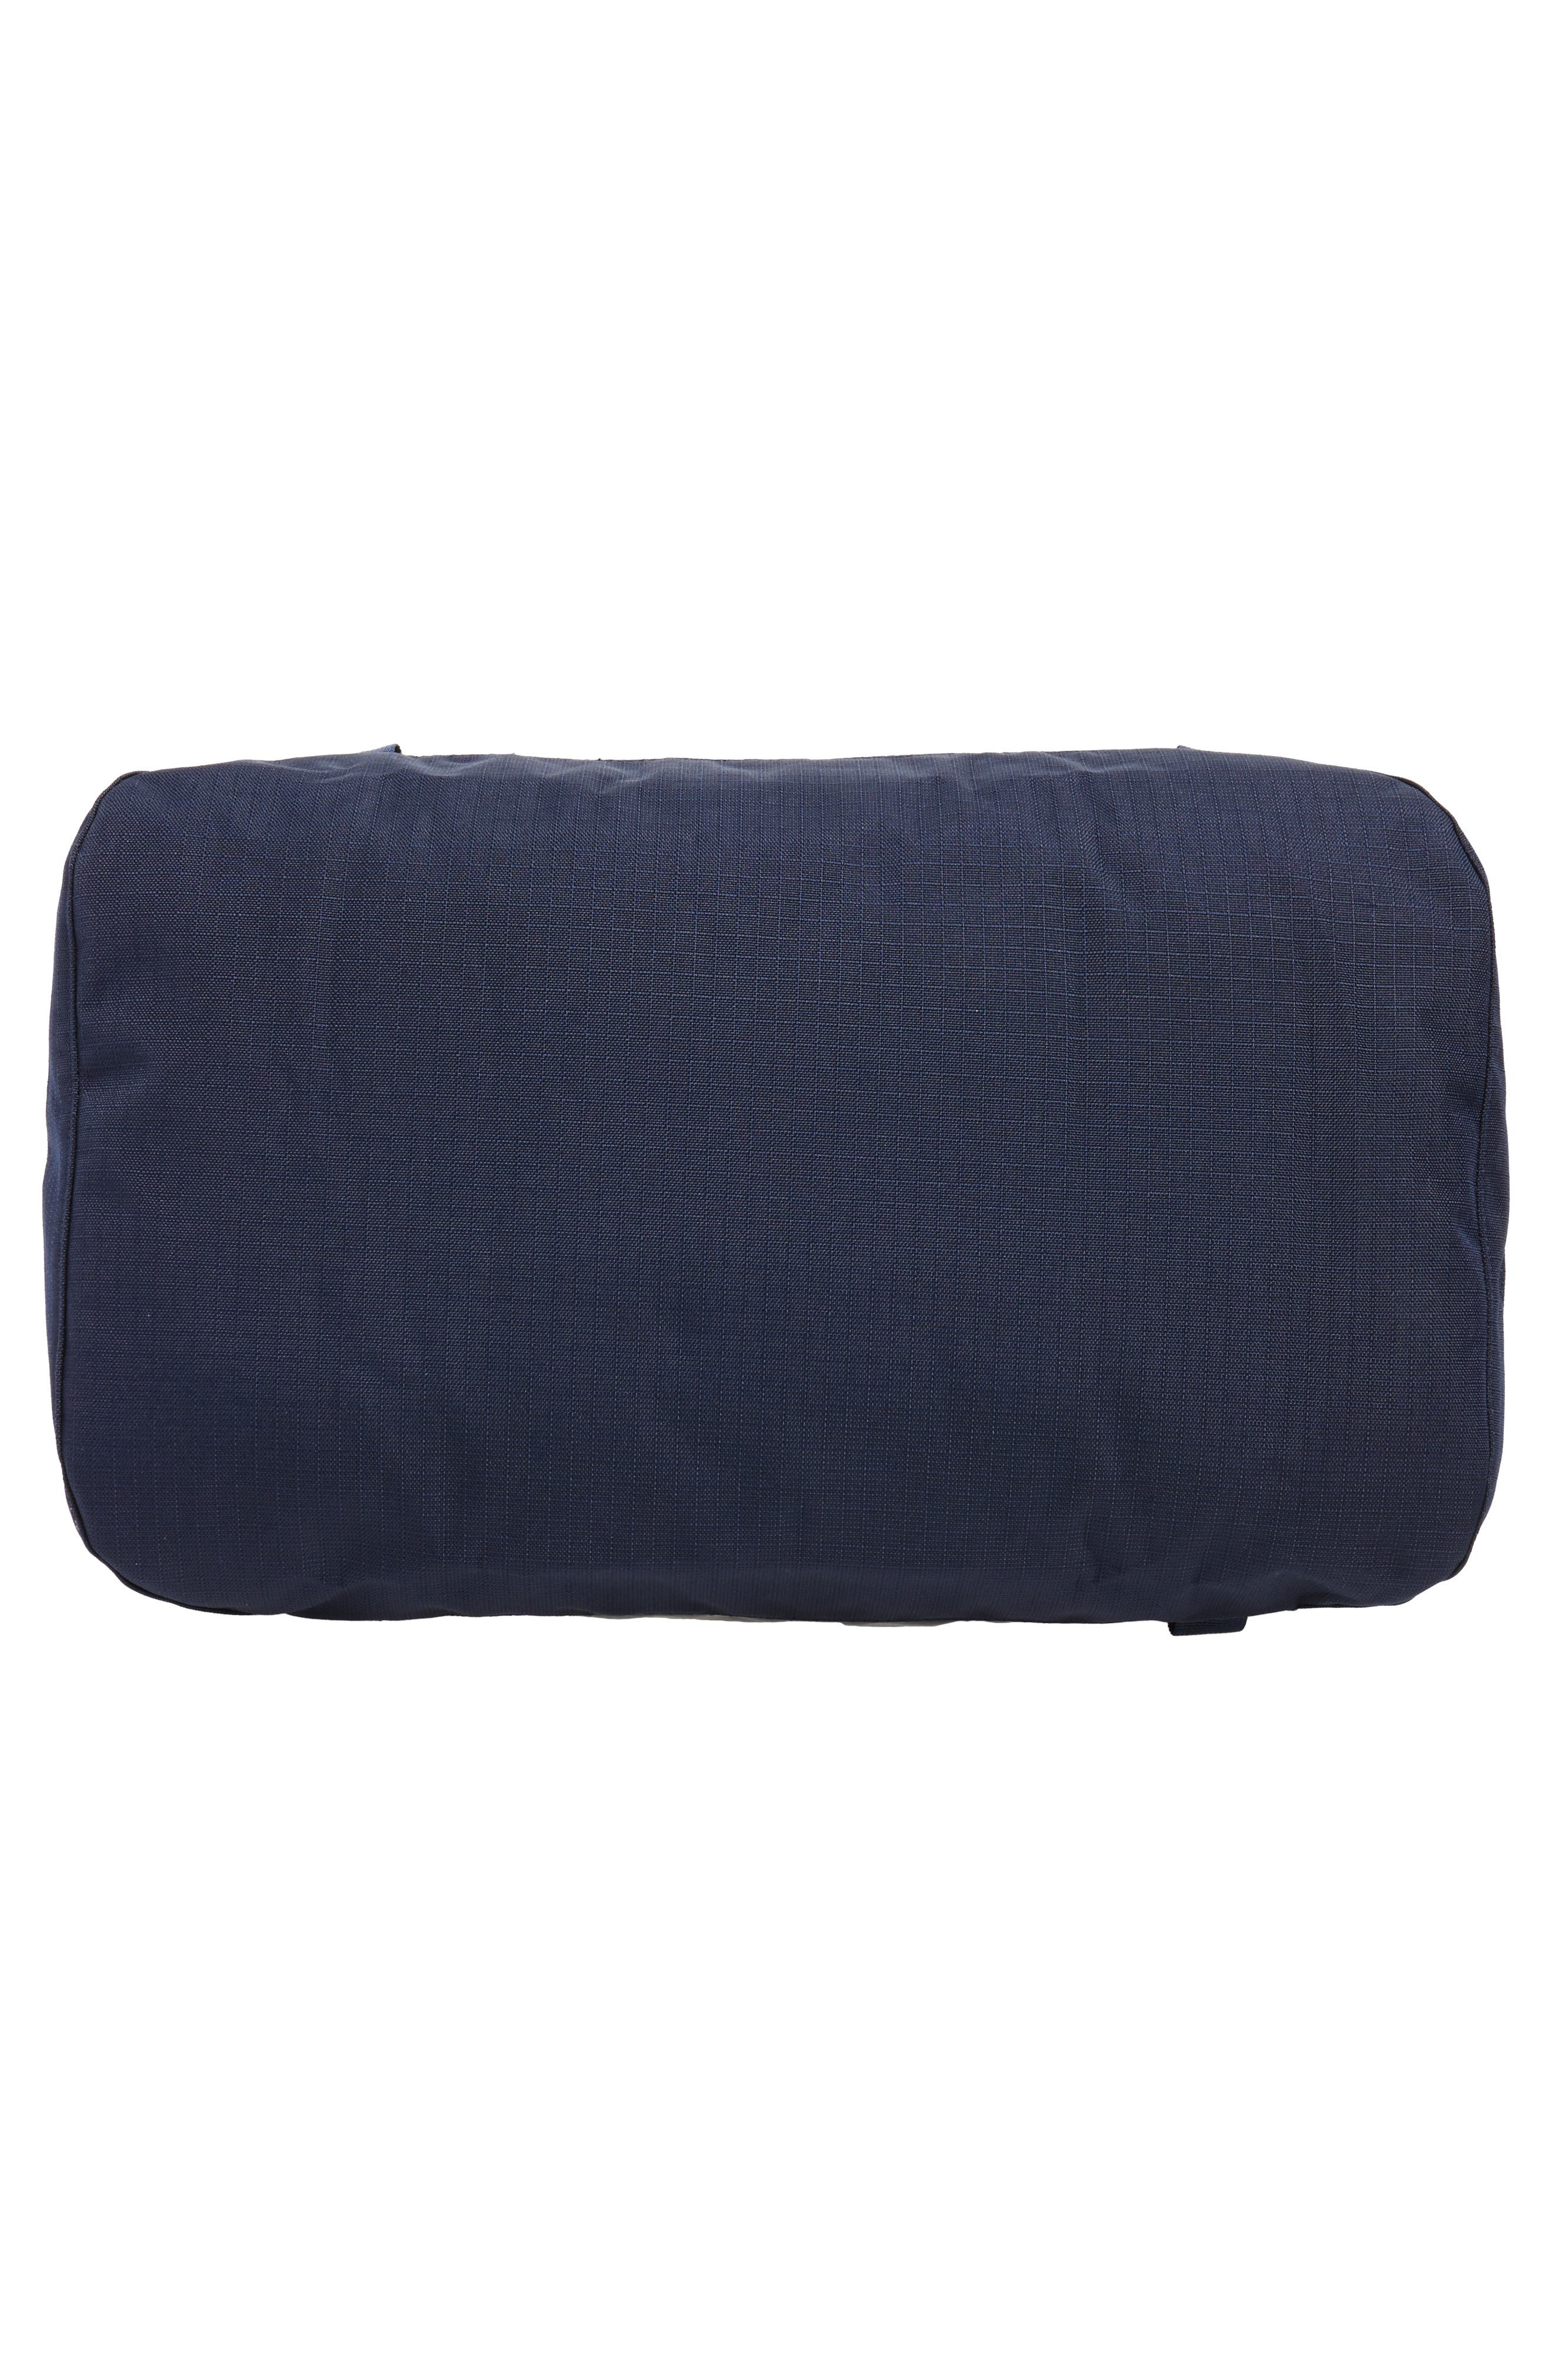 Black Hole Water Repellent Duffel Bag,                             Alternate thumbnail 5, color,                             Navy Blue W/ Paintbrush Red